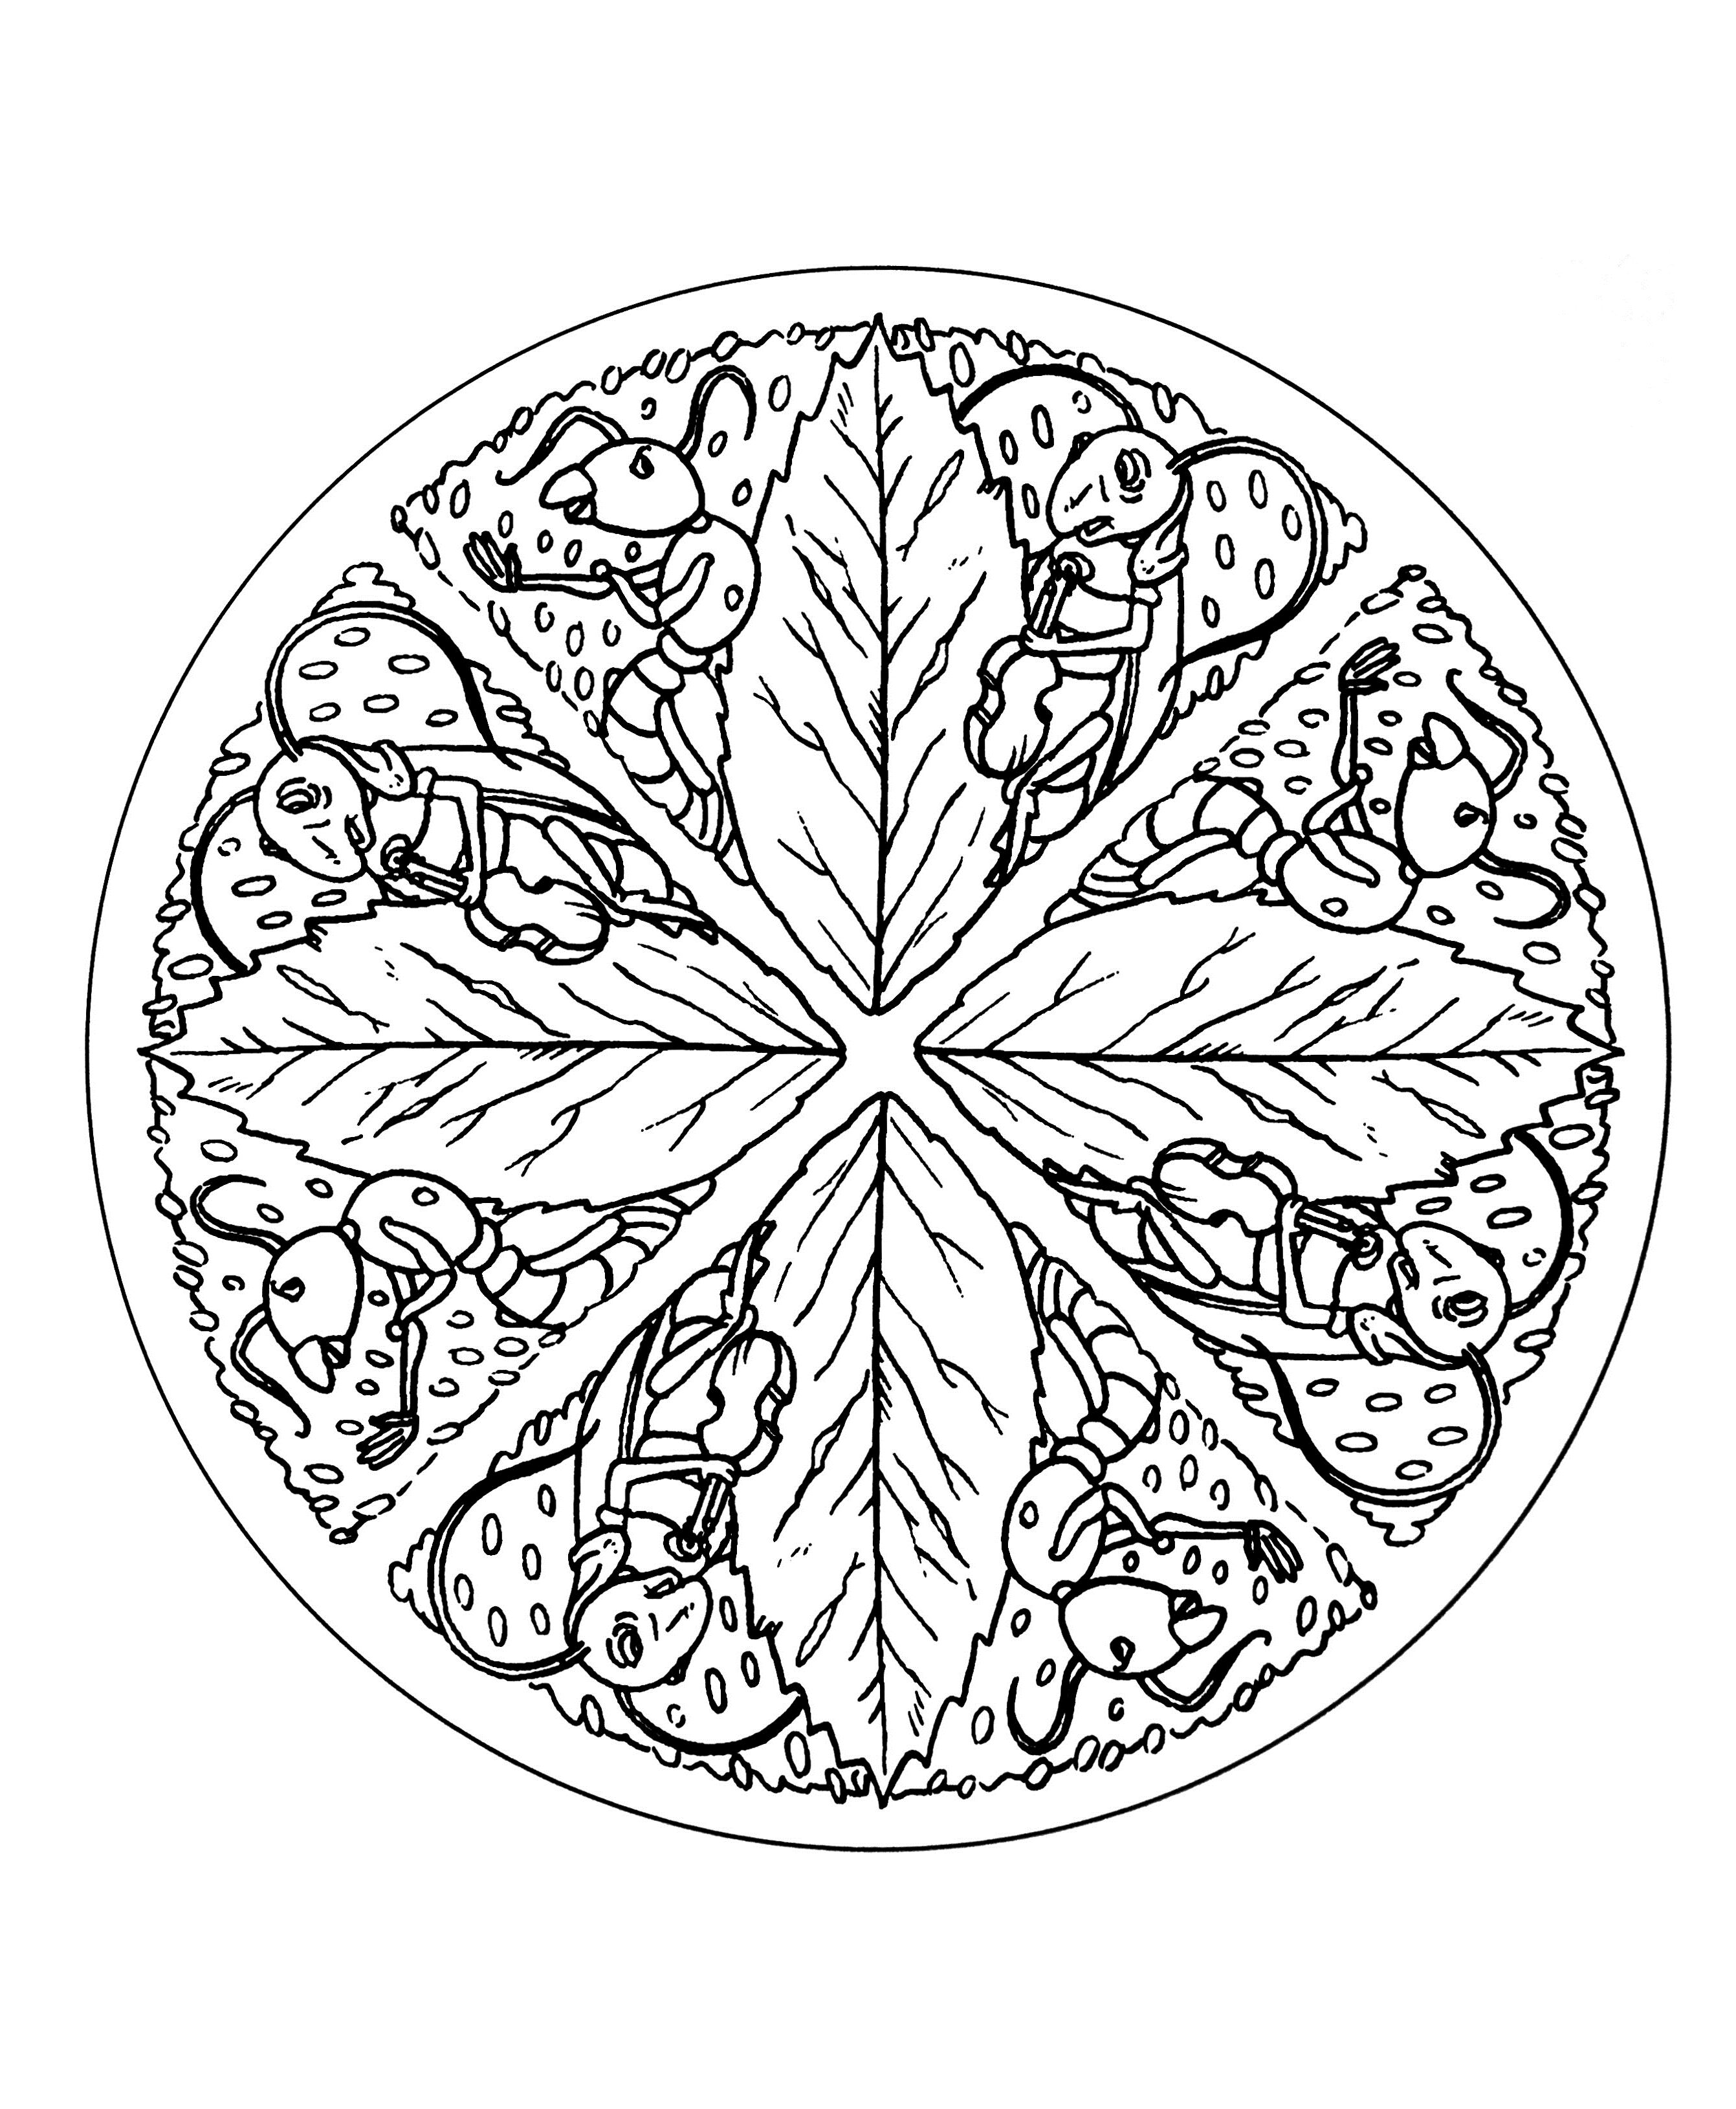 easy animal mandala coloring pages online mandala coloring free download educative mandala pages animal coloring easy